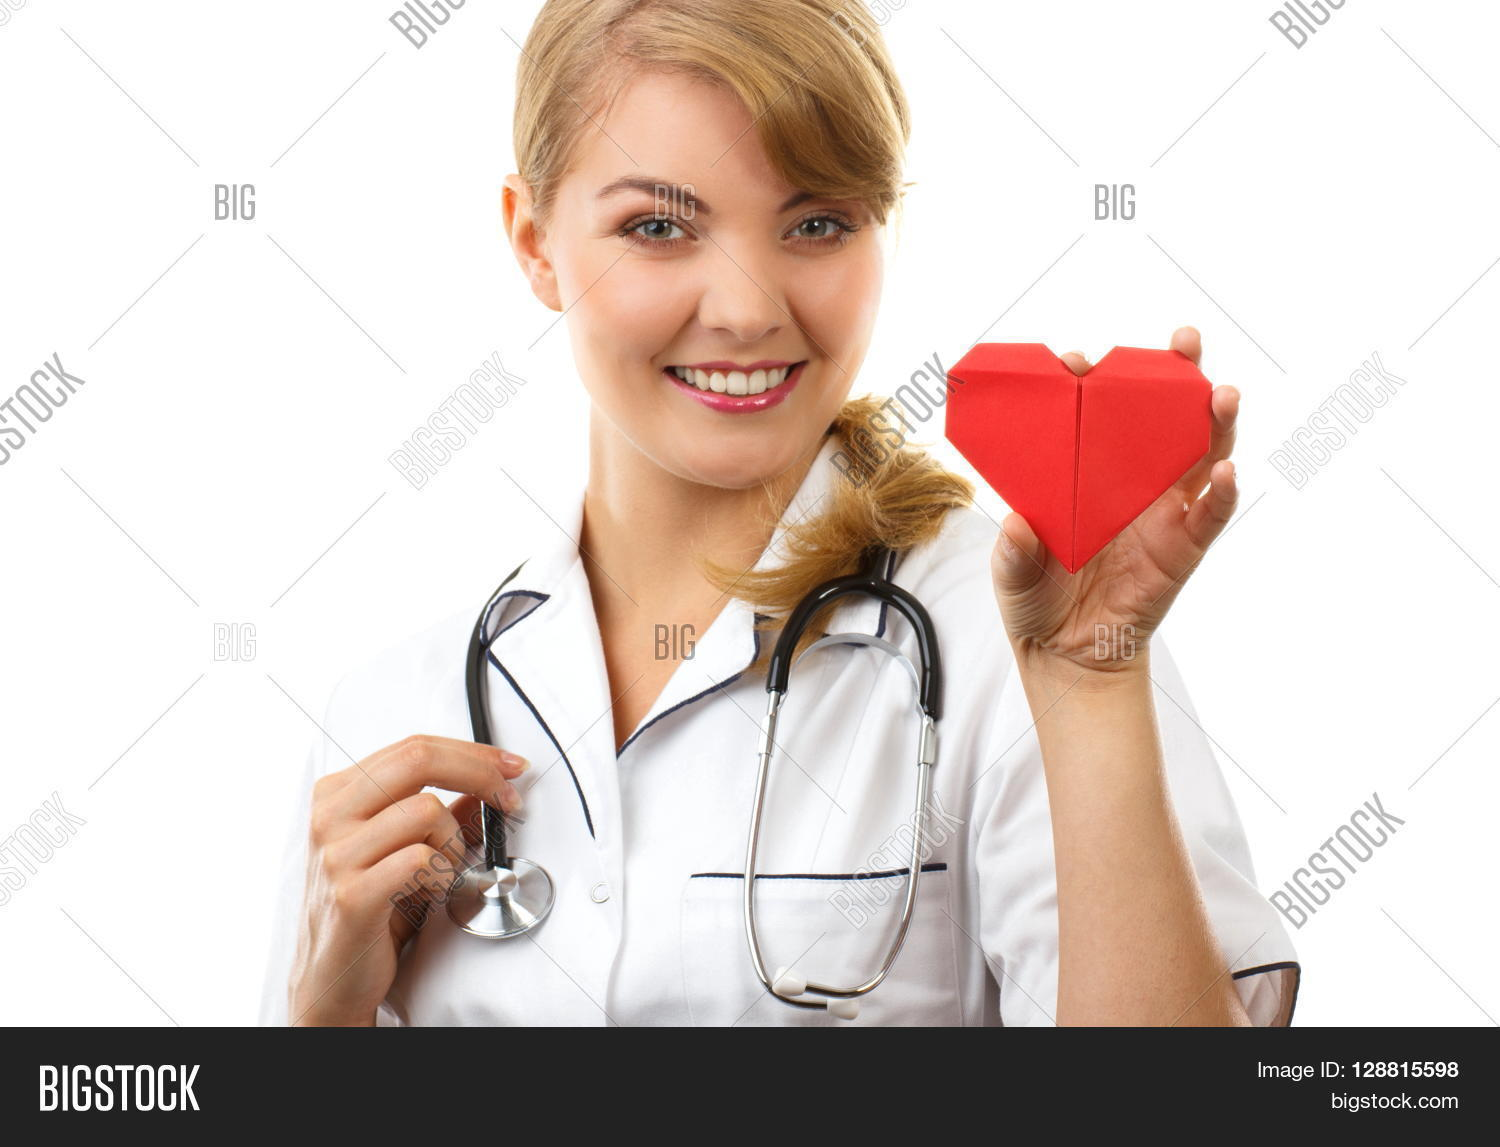 White apron health - Smiling Woman Doctor Cardiologist In White Apron With Stethoscope Holding Red Heart Of Paper Healthcare And